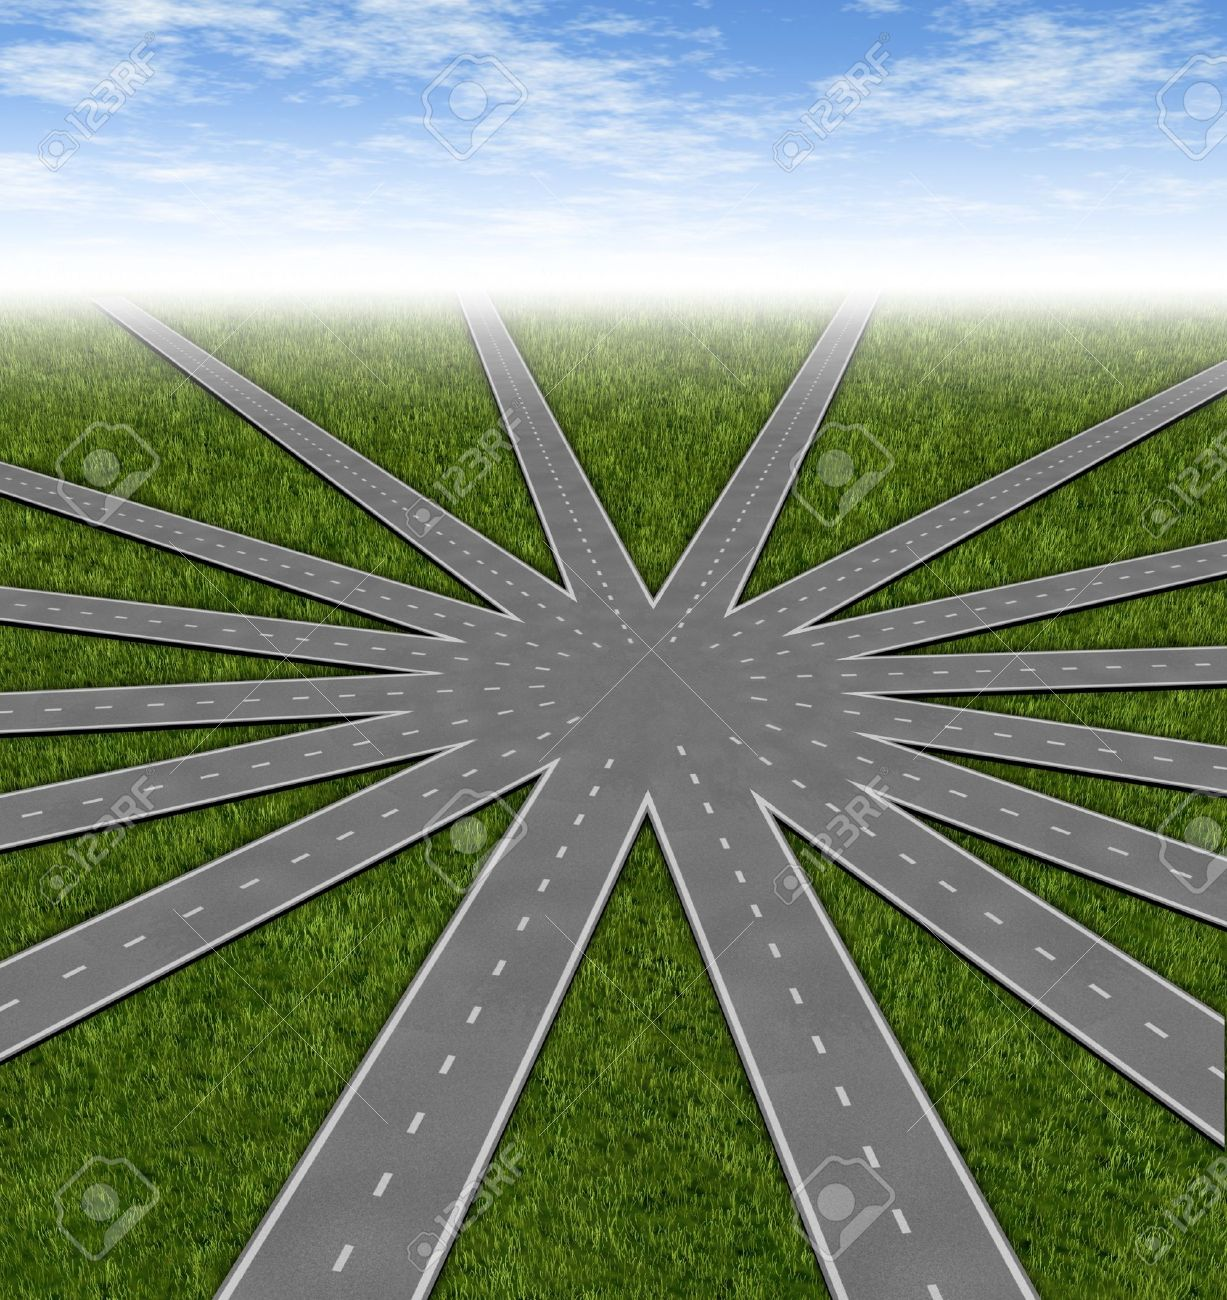 Choices and strategies symbol represented by a network of roads and highways merging to a center point showing many options and paths available to a team and common goals vision and a multiple paths to a unified strategy. Stock Photo - 11359712